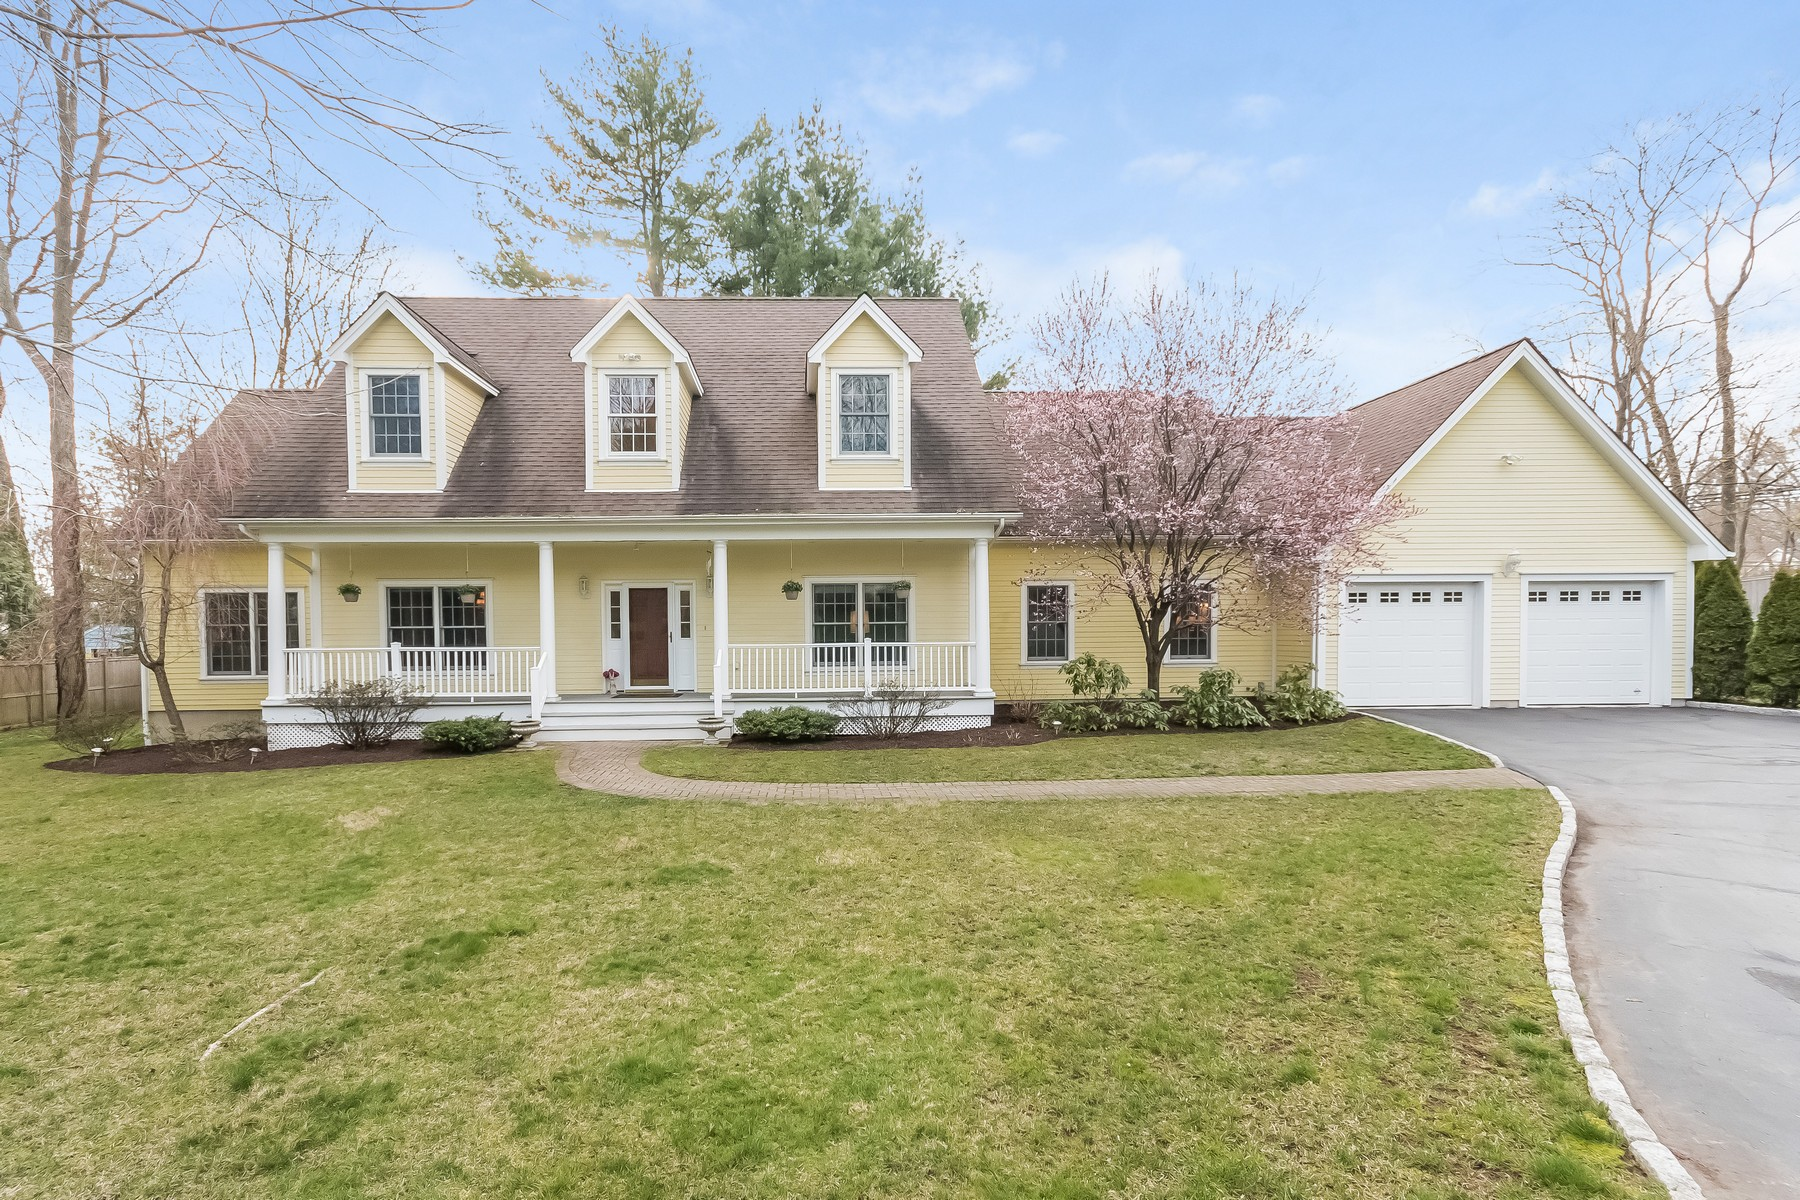 Single Family Home for Sale at Seagate Waterfront Association 1 Lighthouse Way Darien, Connecticut, 06820 United States